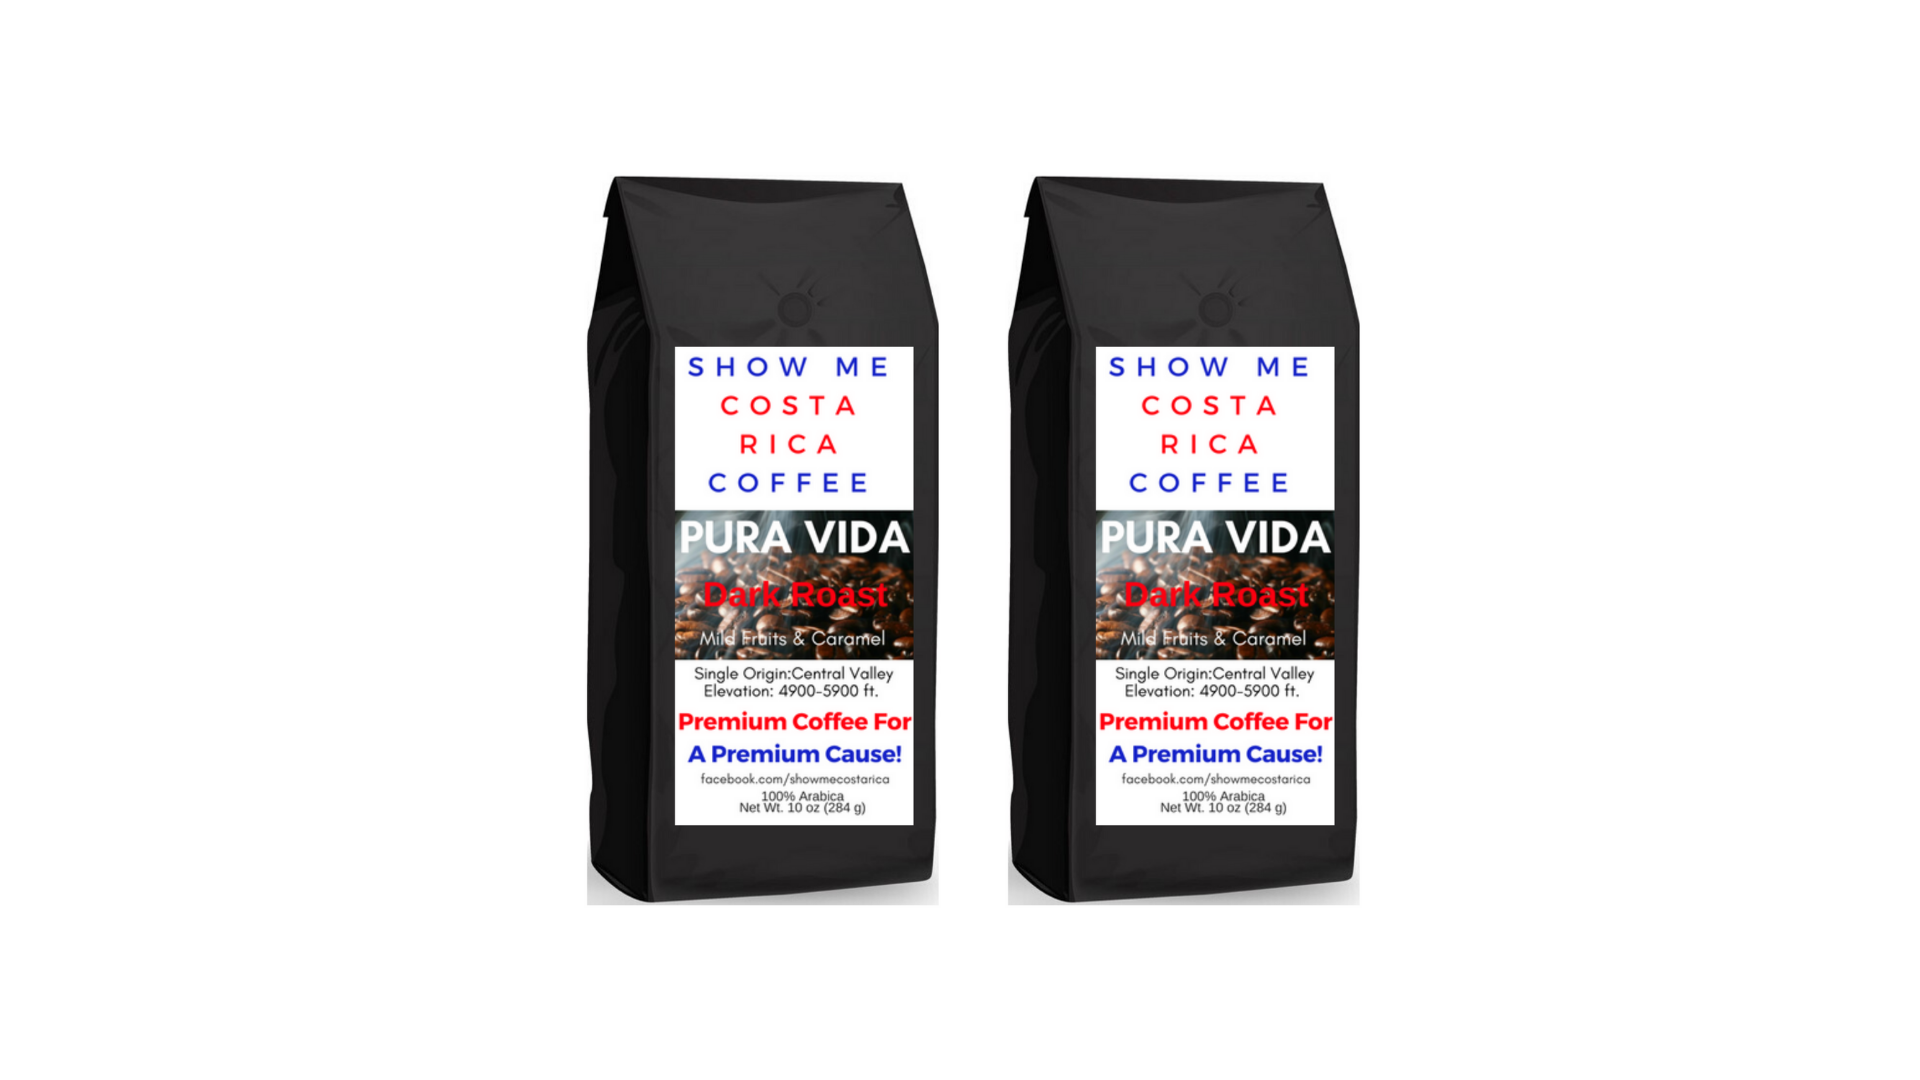 2 Bags Of Your Favorite Coffee